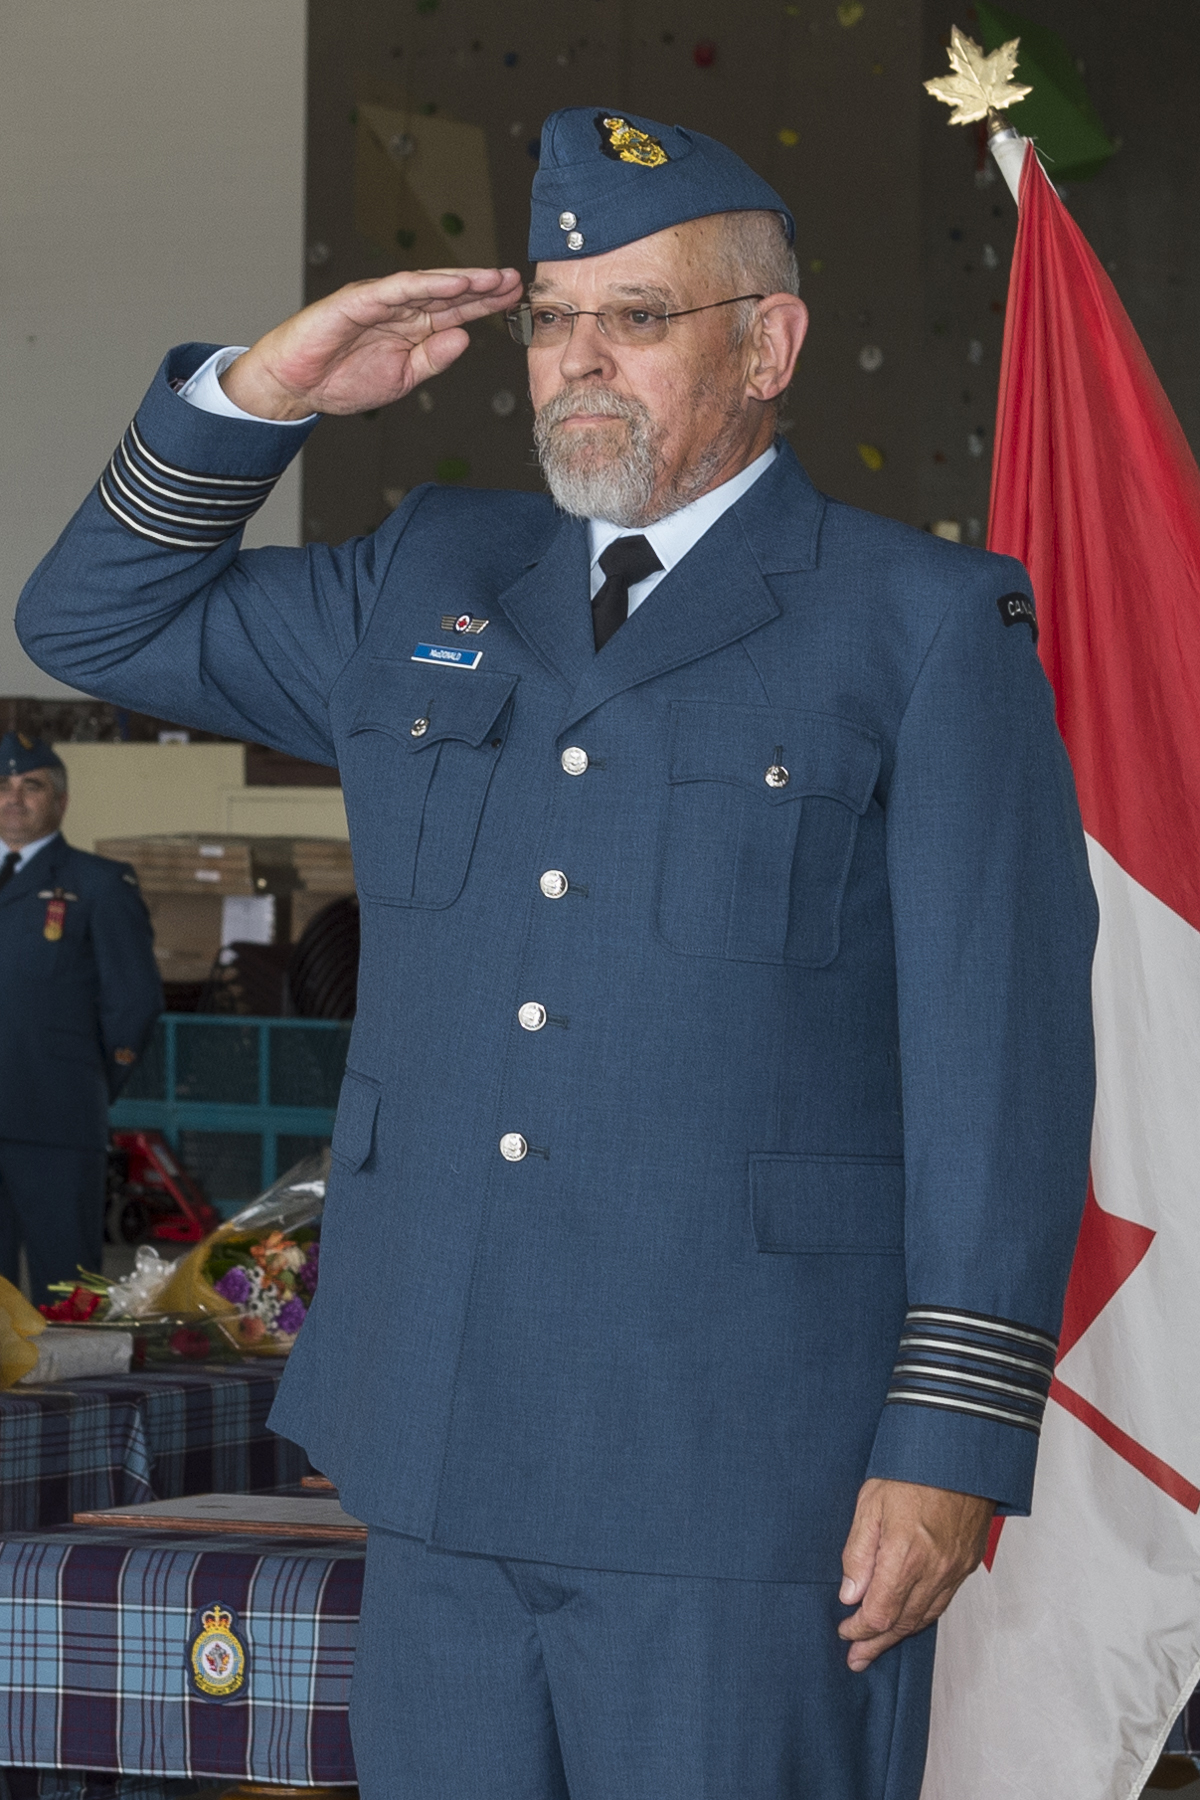 A man in a blue military uniform salutes, flanked by two large images of the badge he wears on his uniform.